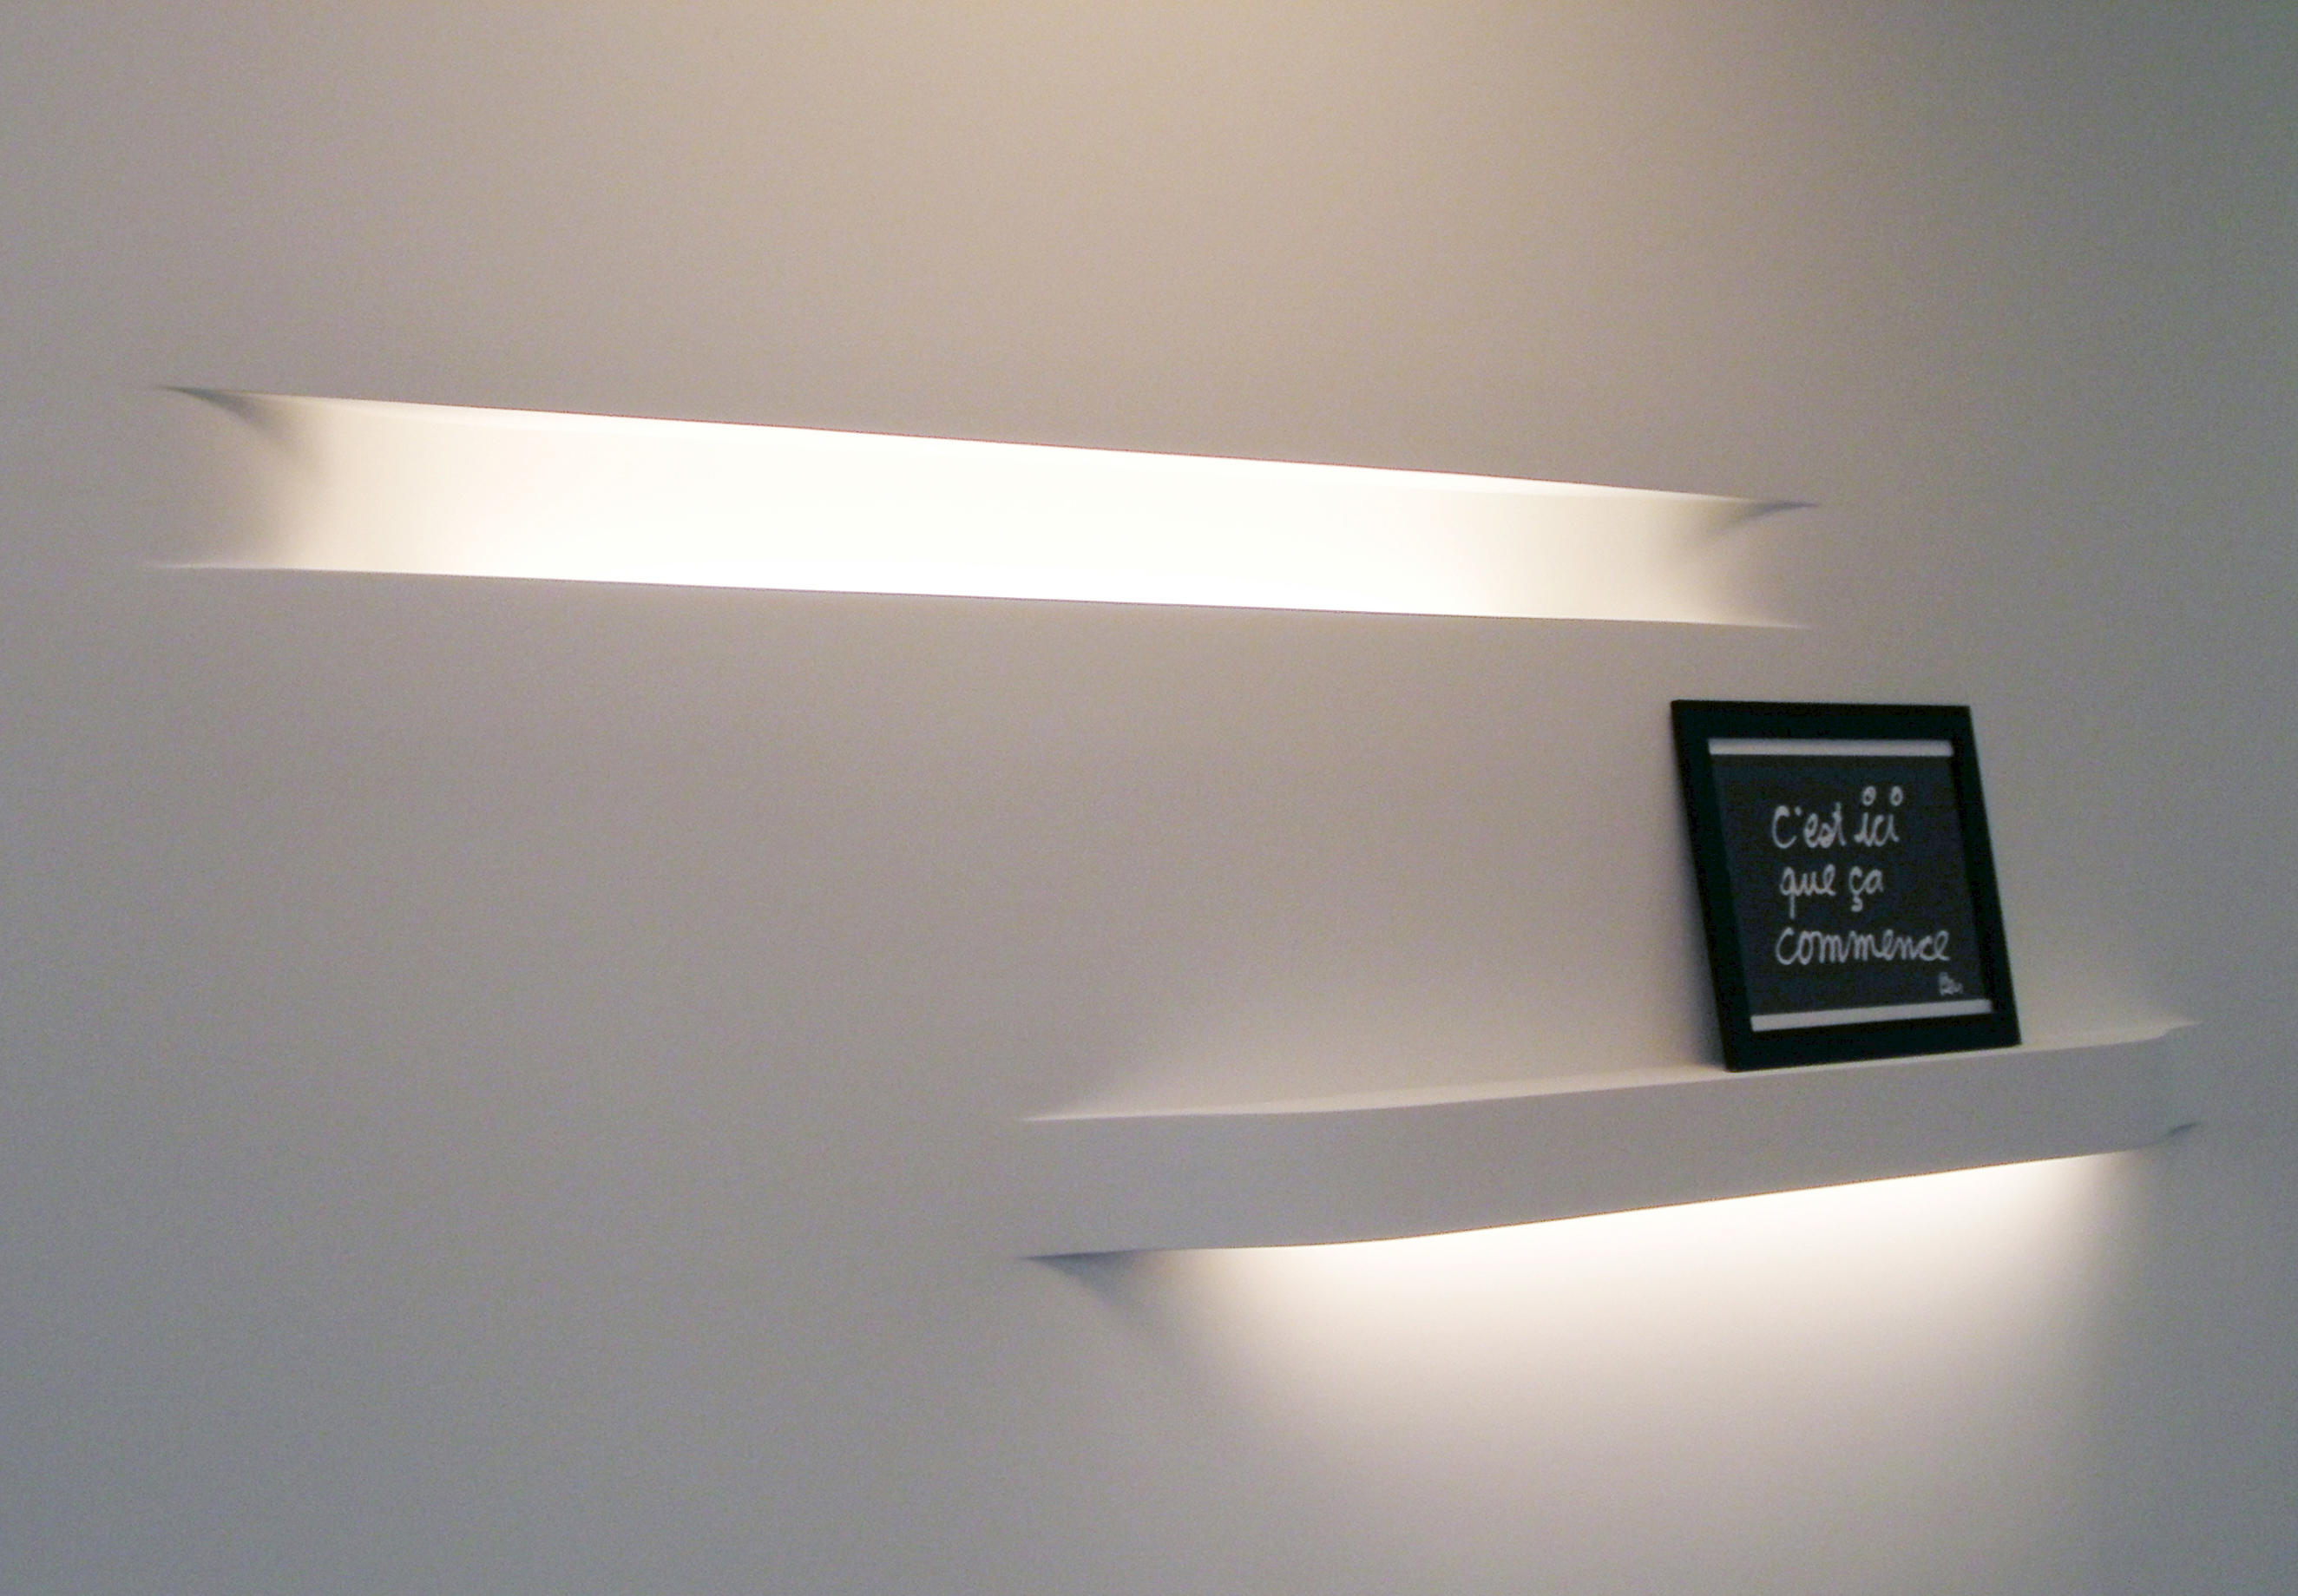 Impression 21 39 Recessed Wall Lights From Brick In The